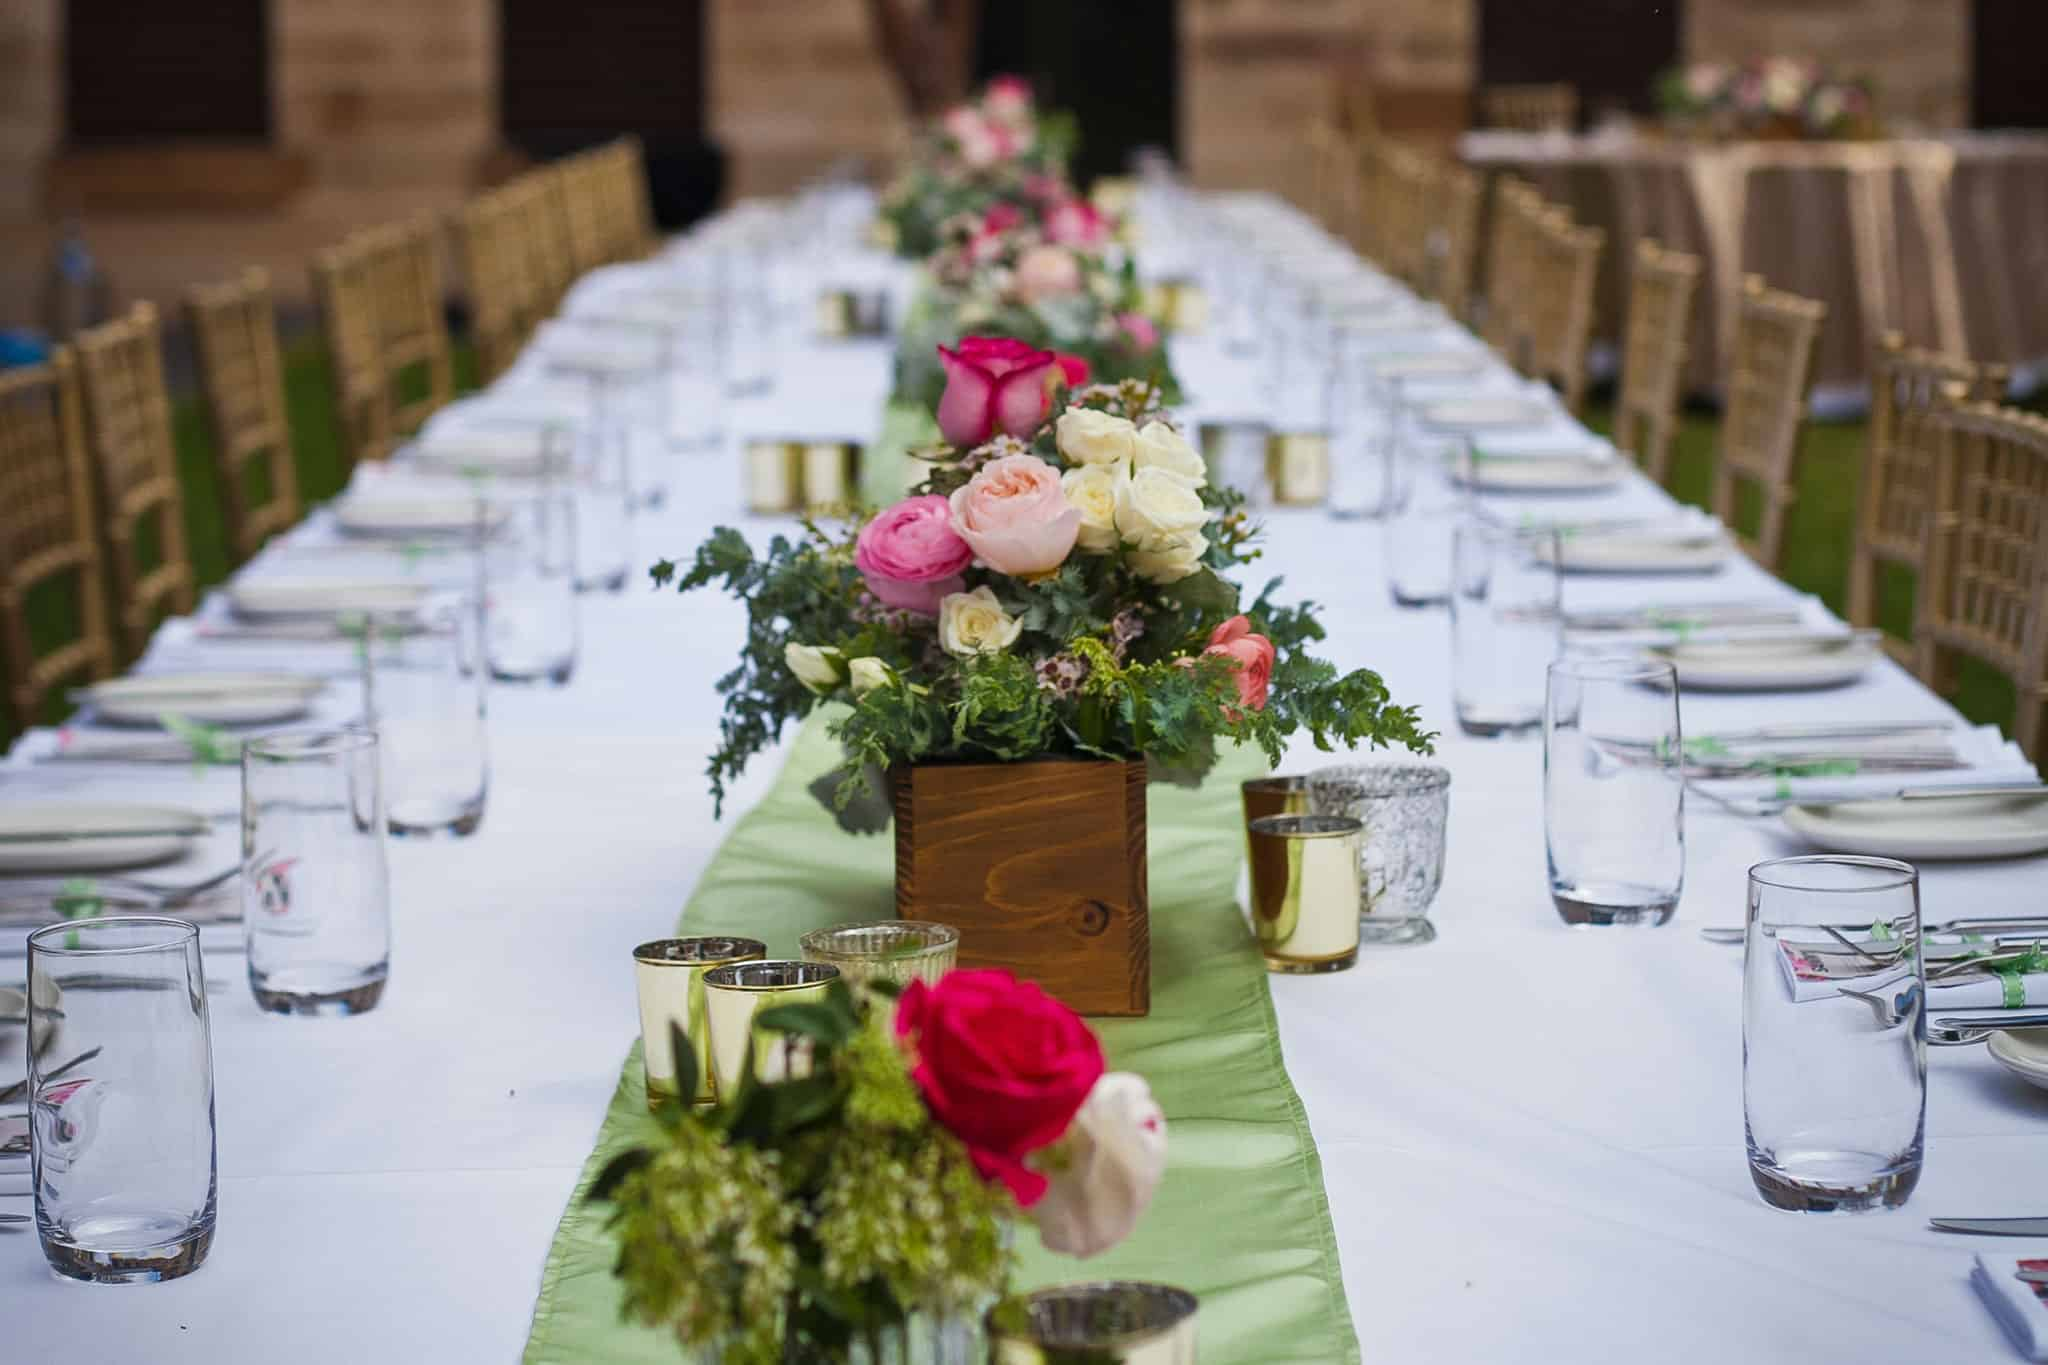 Wedding Planner Sydney: TUMBLEWEED EVENTS